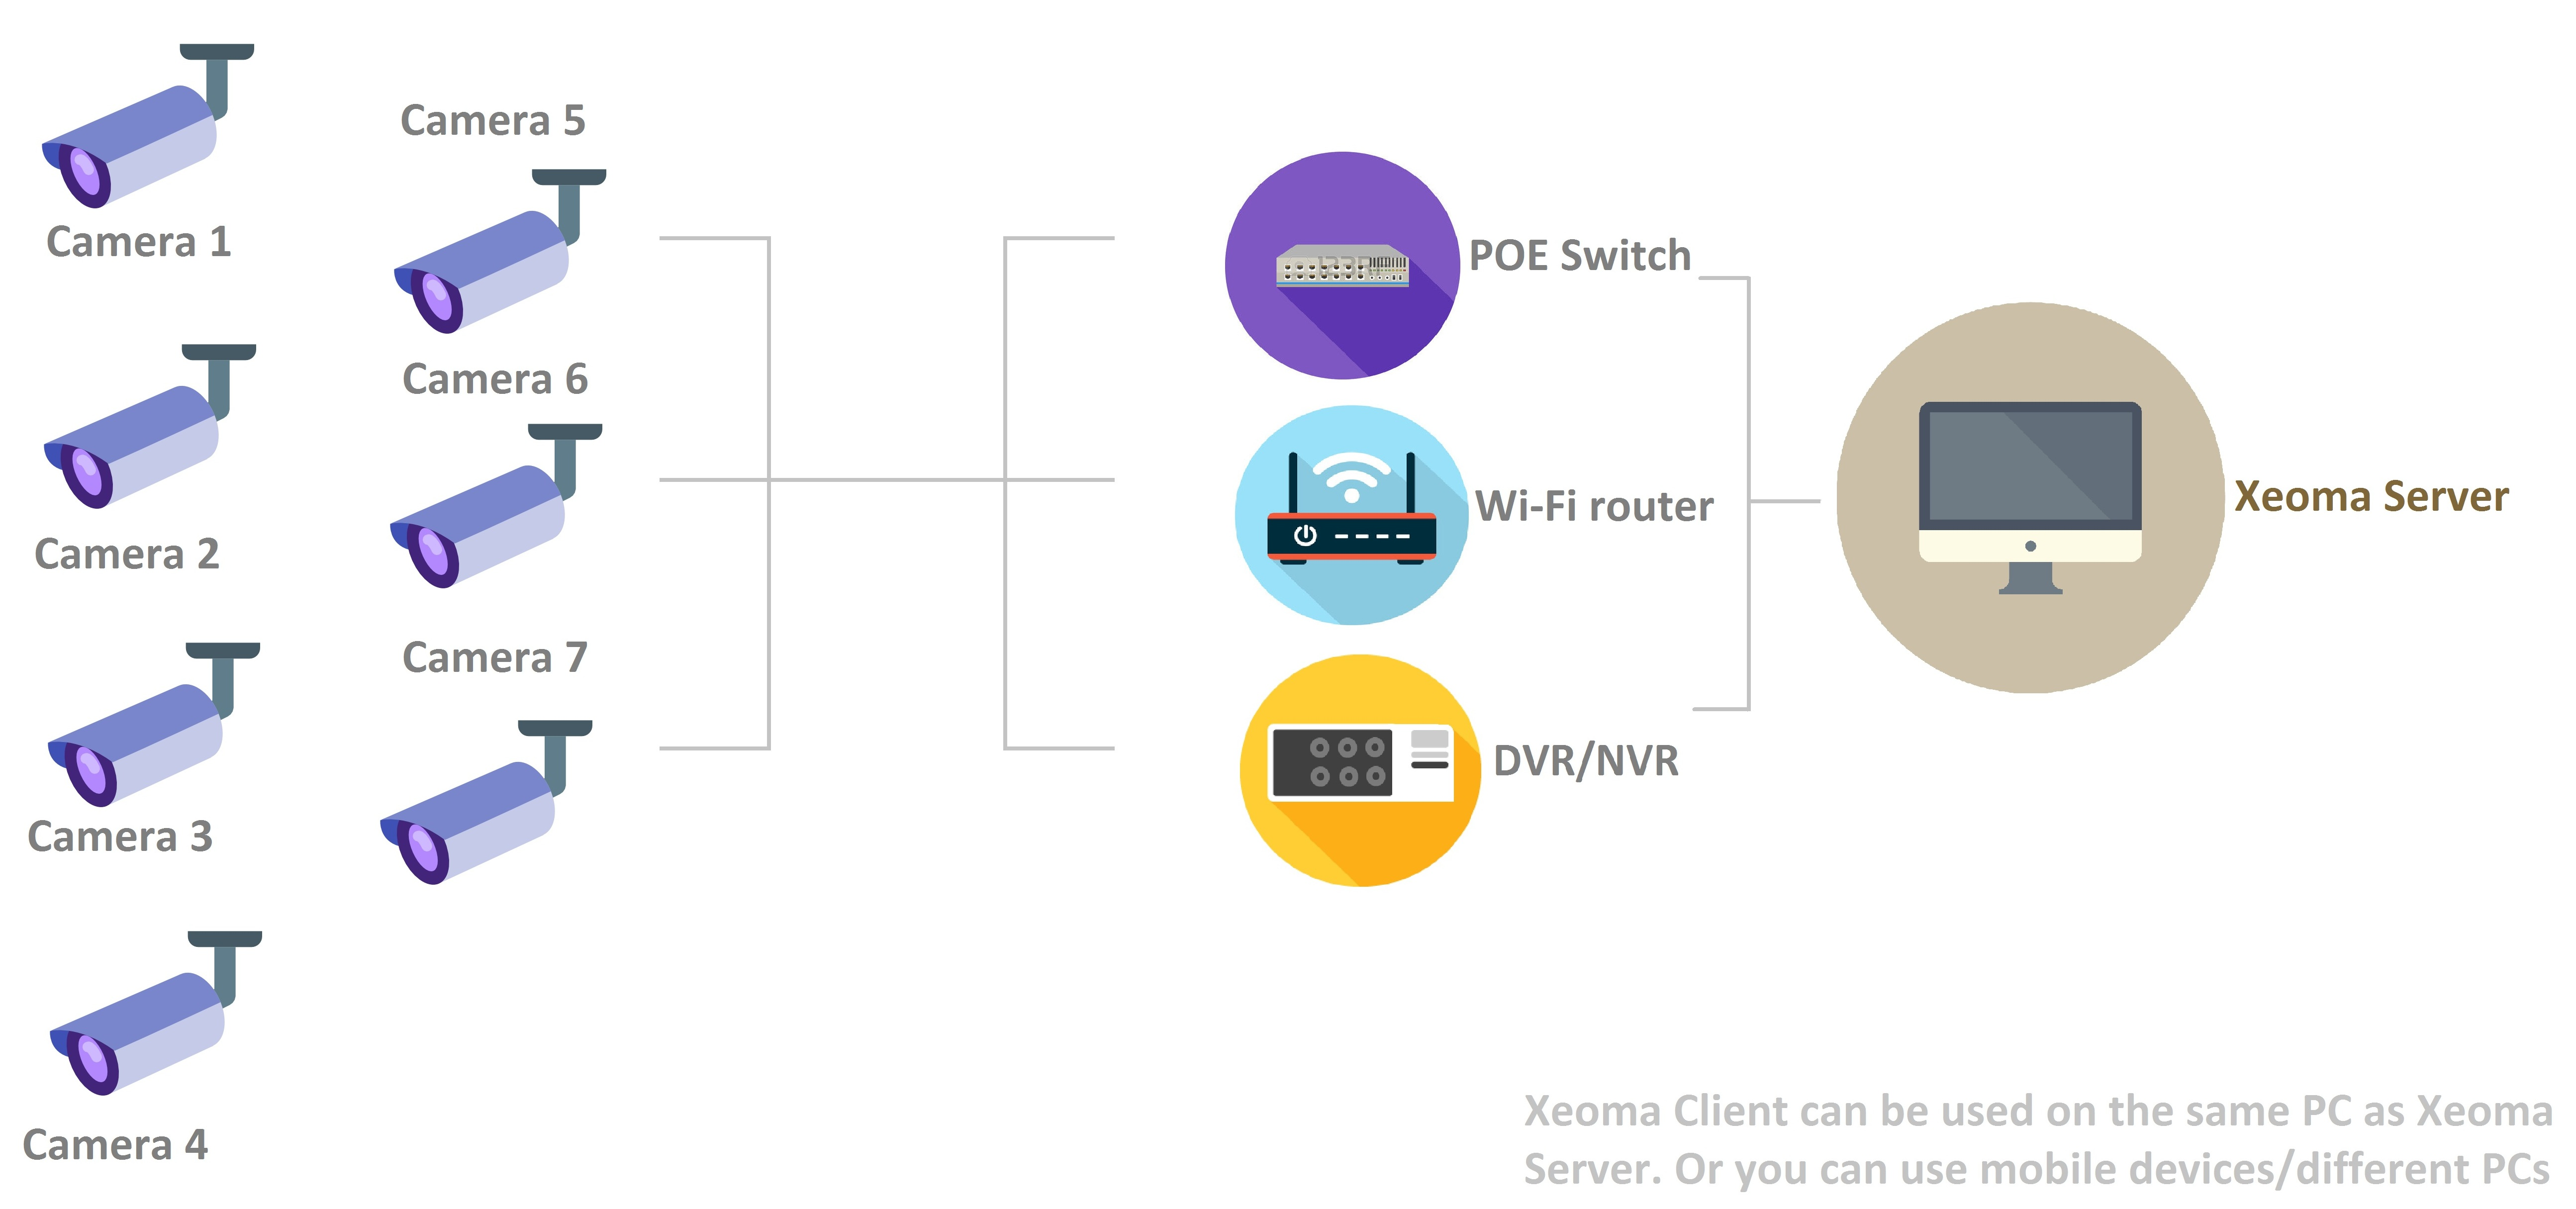 Xeoma surveillance can be used in enterprise environment with a system architecture like depicted